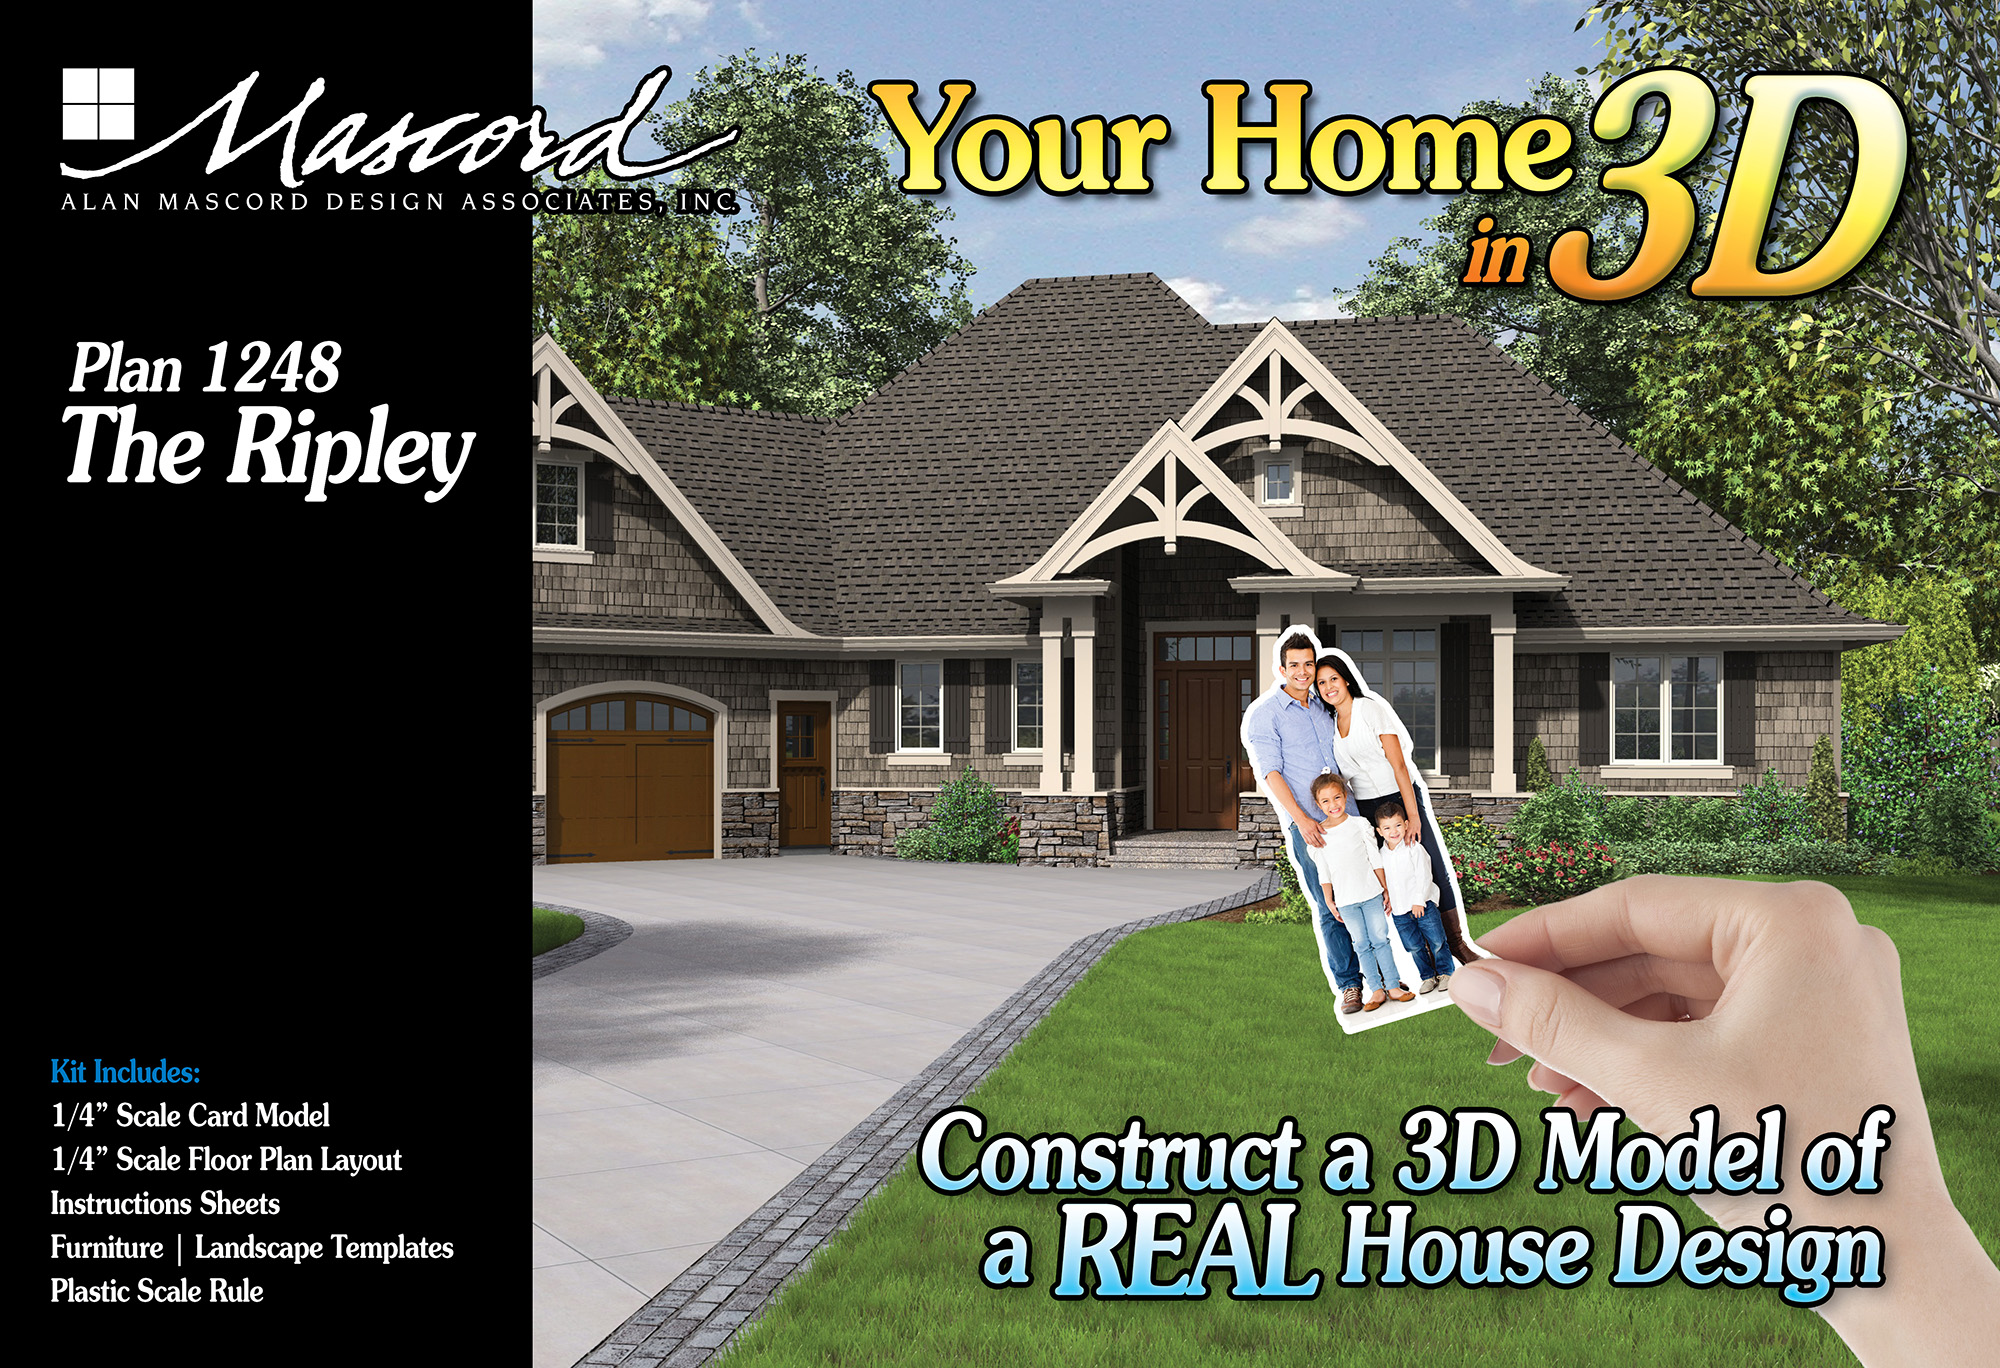 Now You Really Can Build Your Dream Home Today